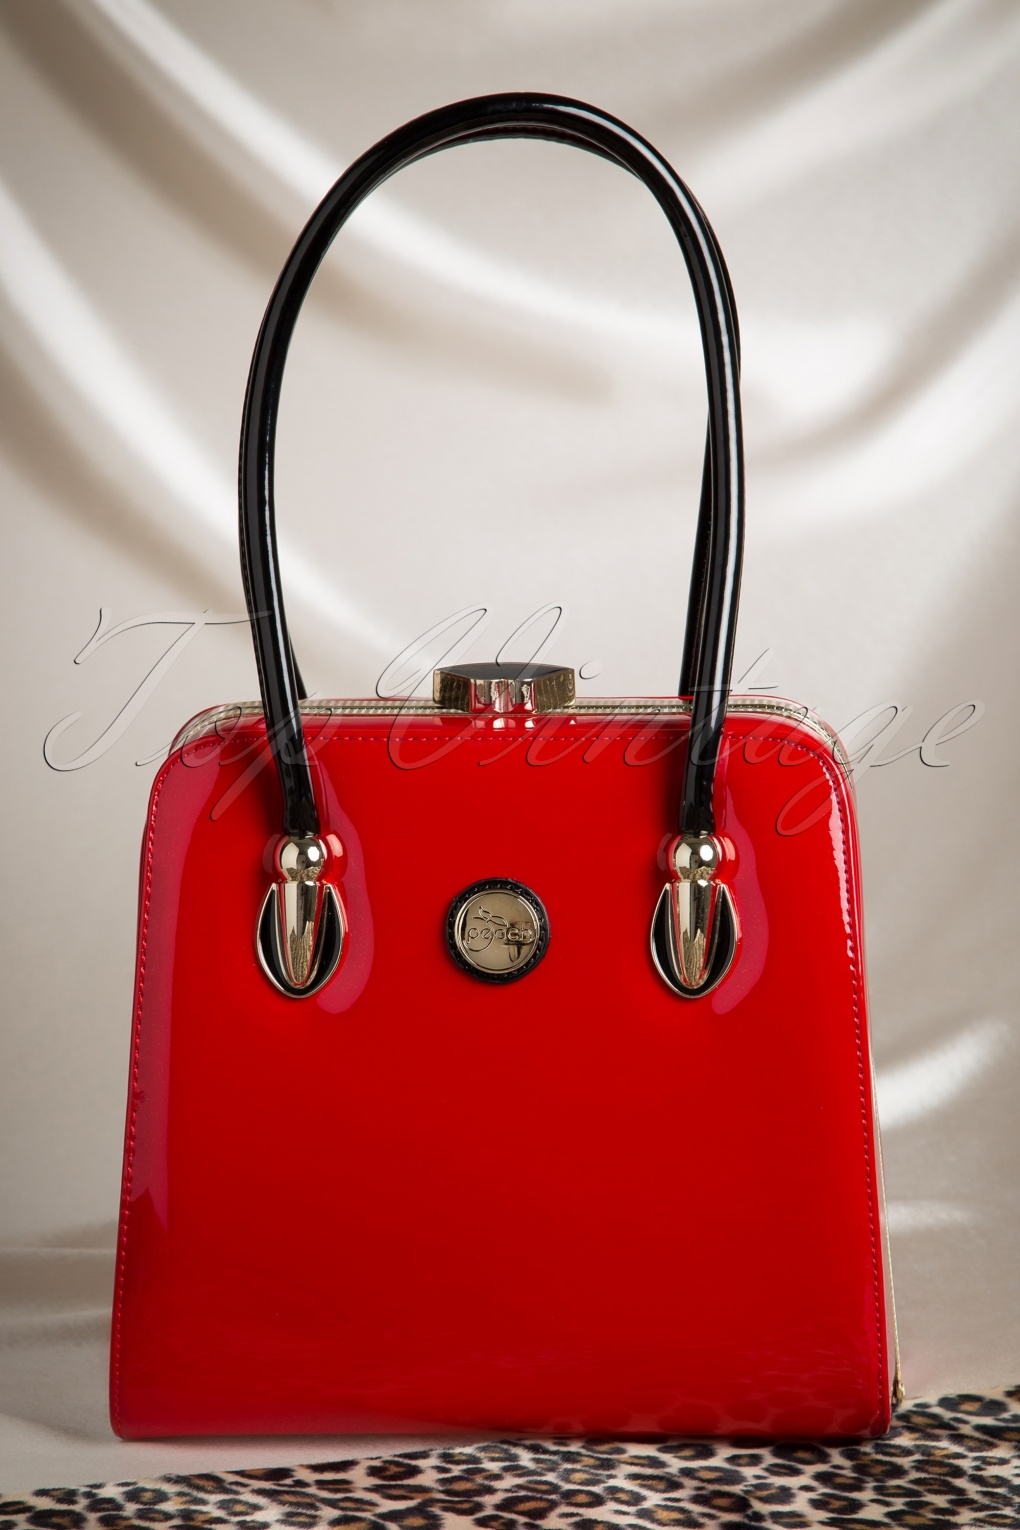 50s Raelene Lacquer Handbag in Deep Red